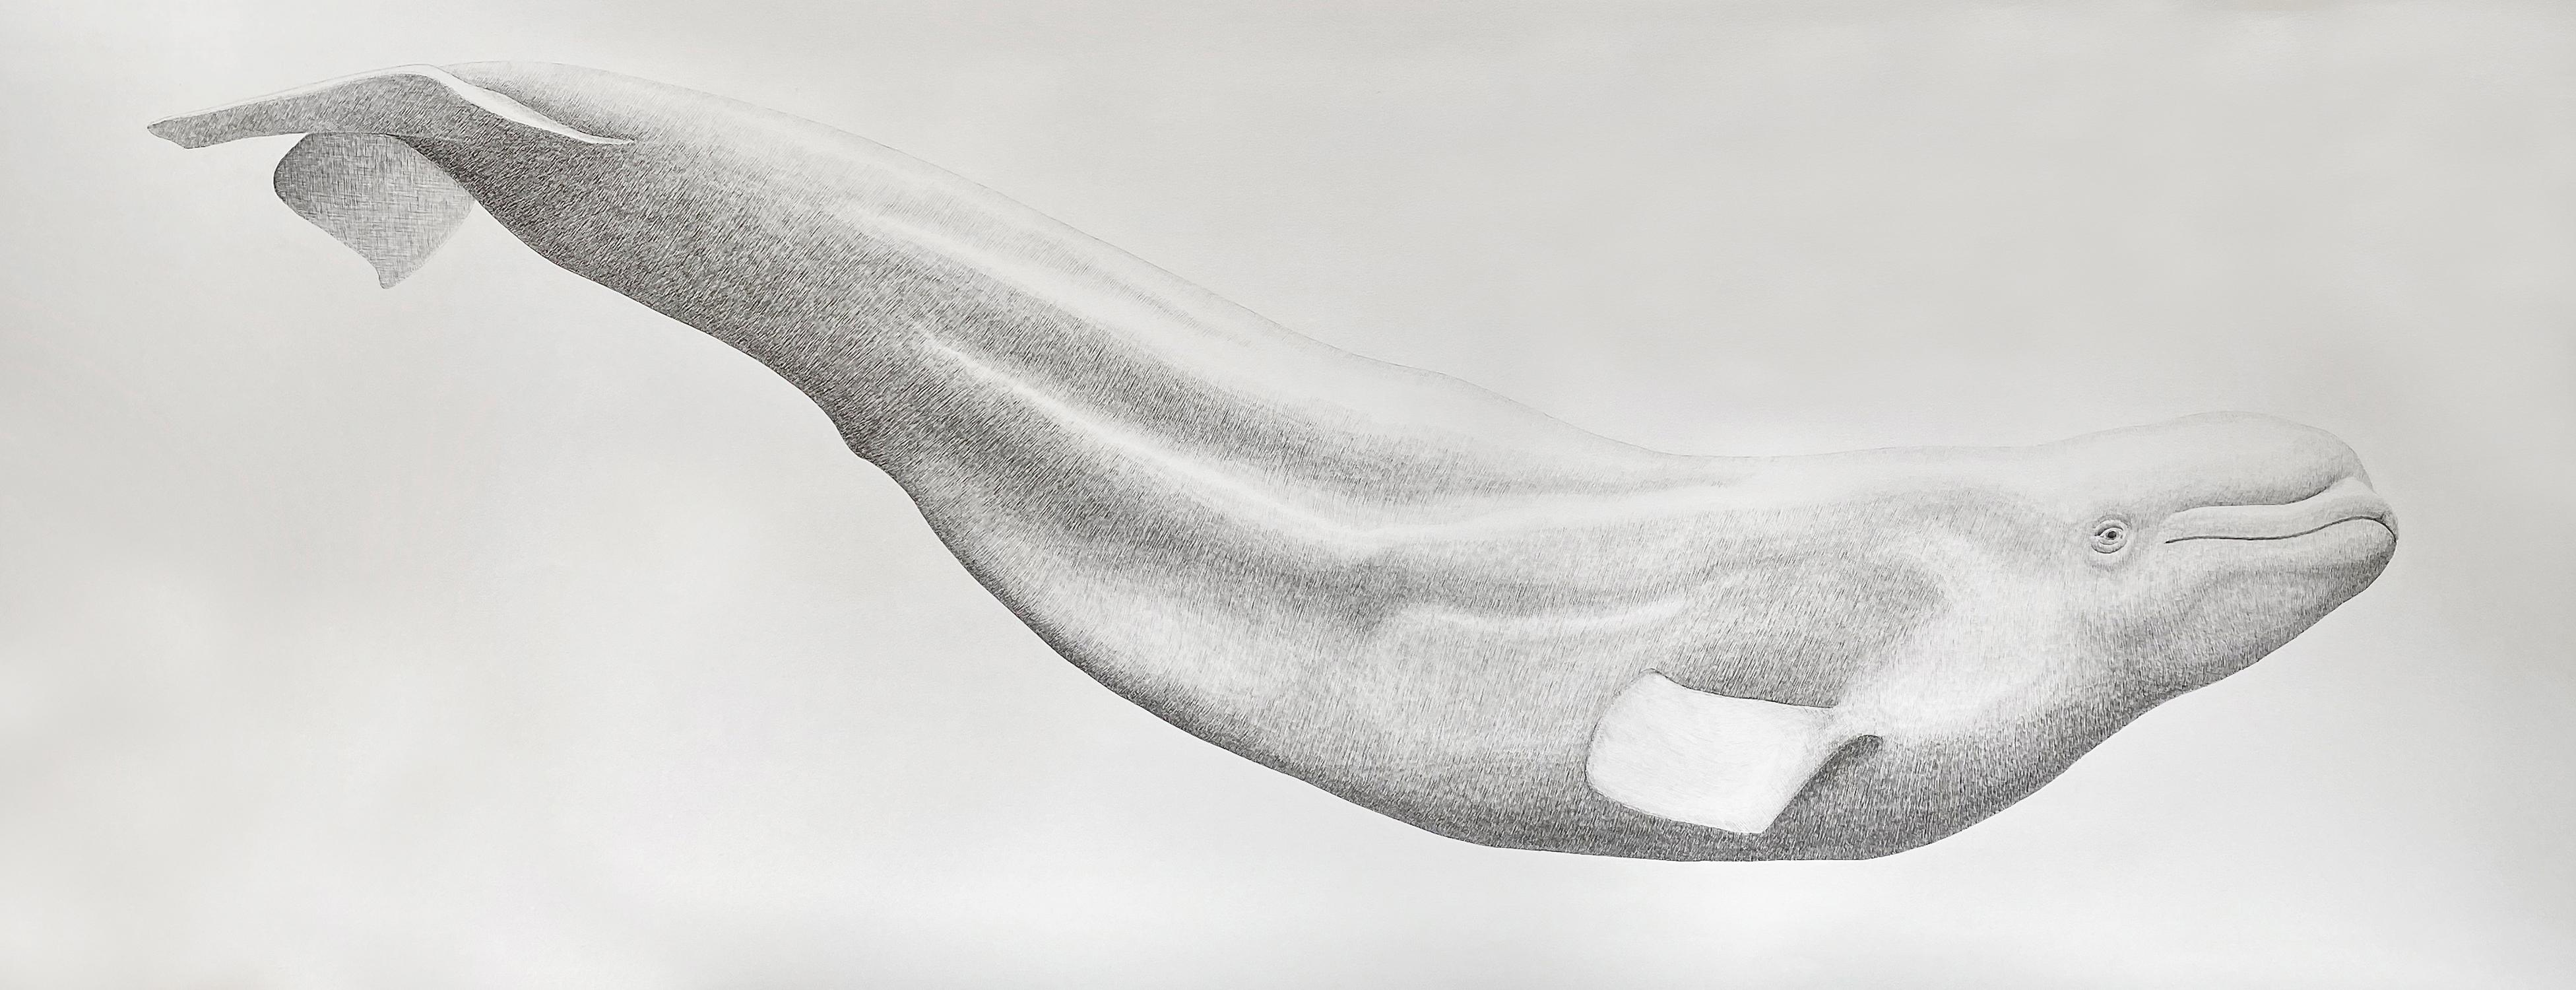 'Beluga' - large-scale animal drawing - Chuck Close - Rembrandt